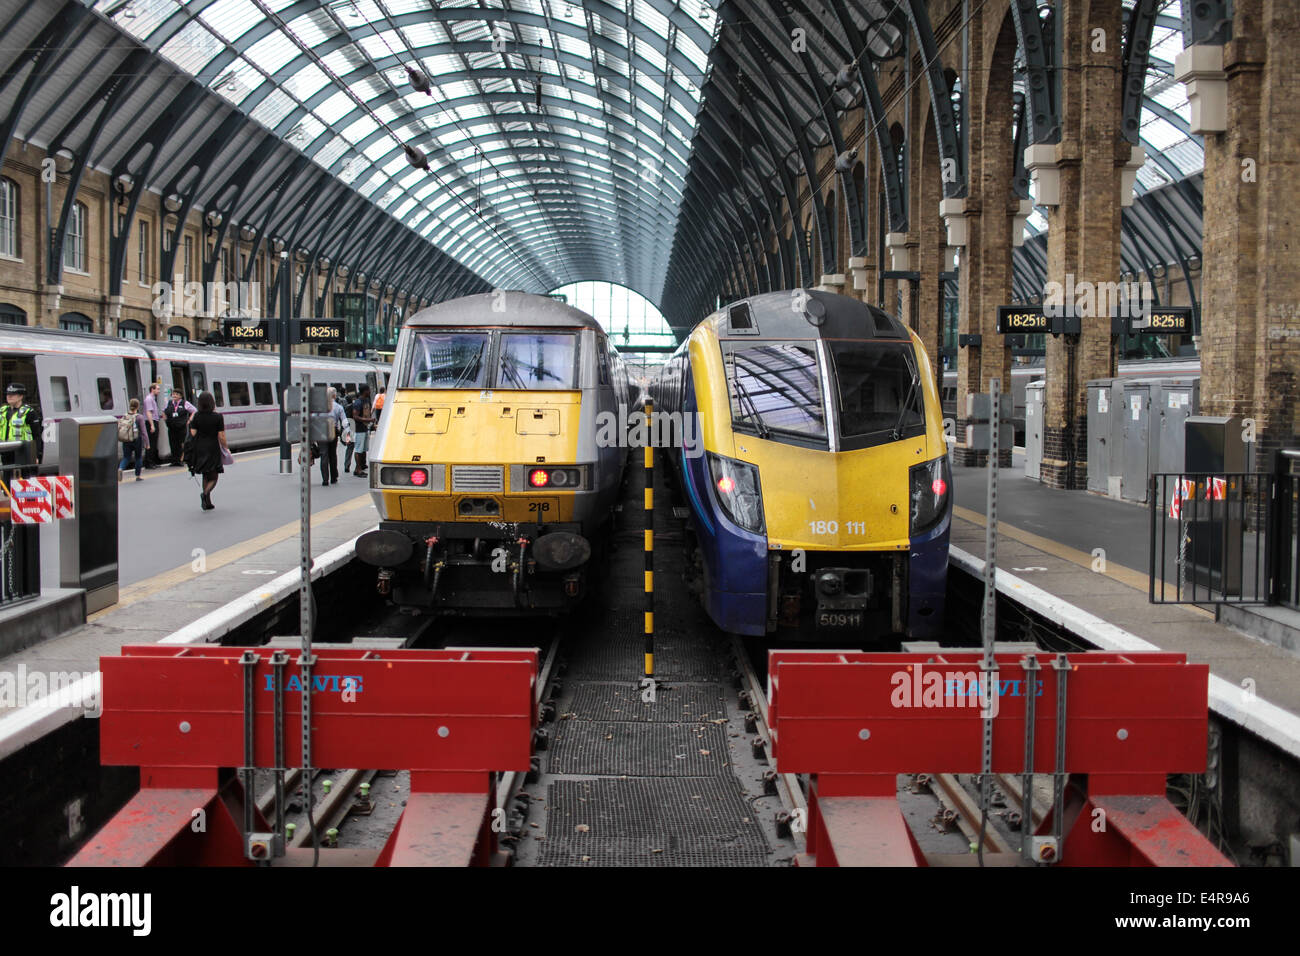 Trains ready to depart King's Cross Railway Station in London, UK. - Stock Image